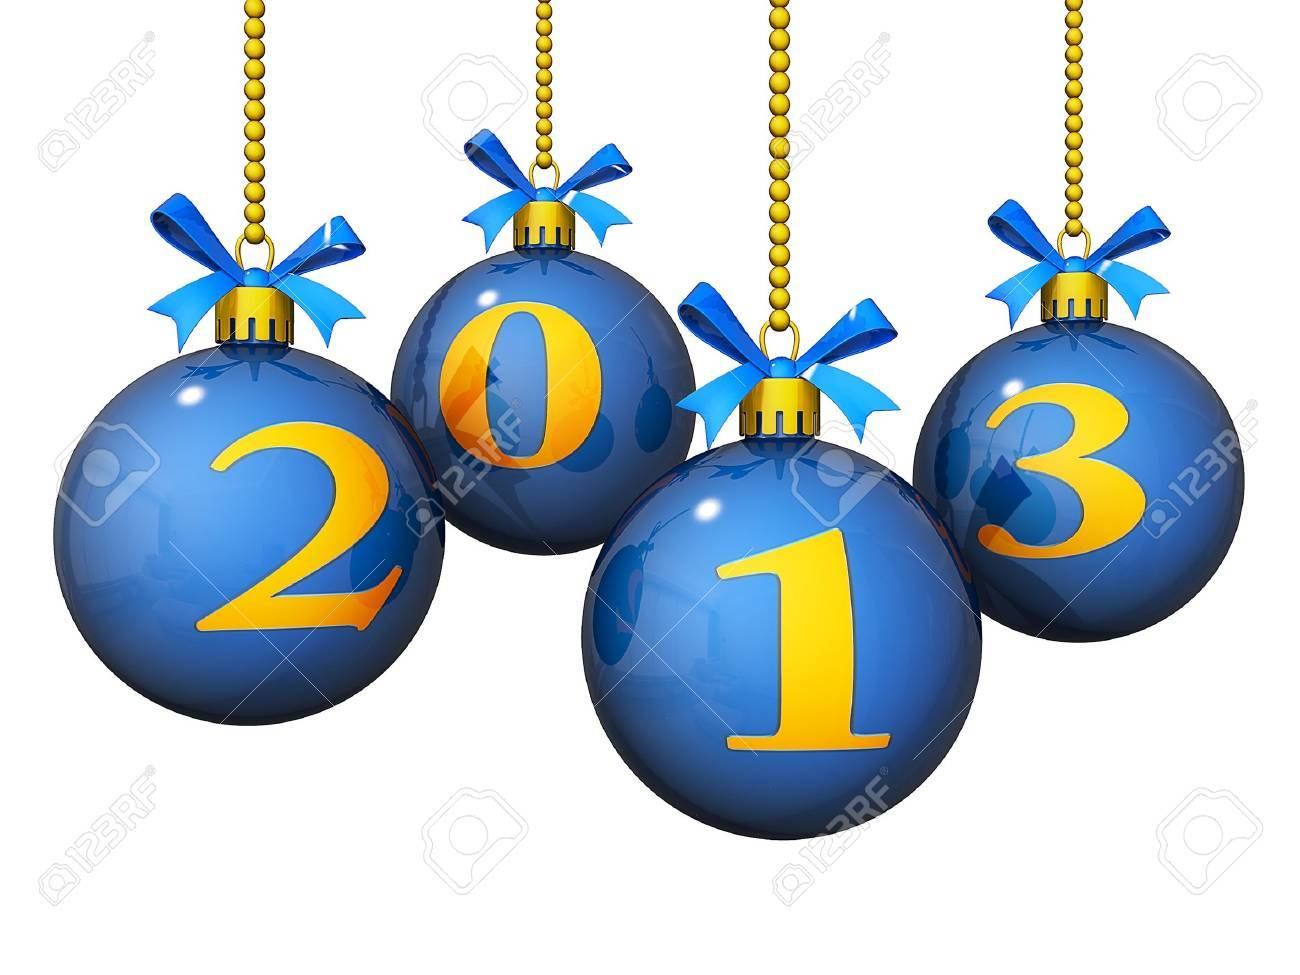 Christmas Ornaments with the new year's 2013 Stock Photo - 15420489